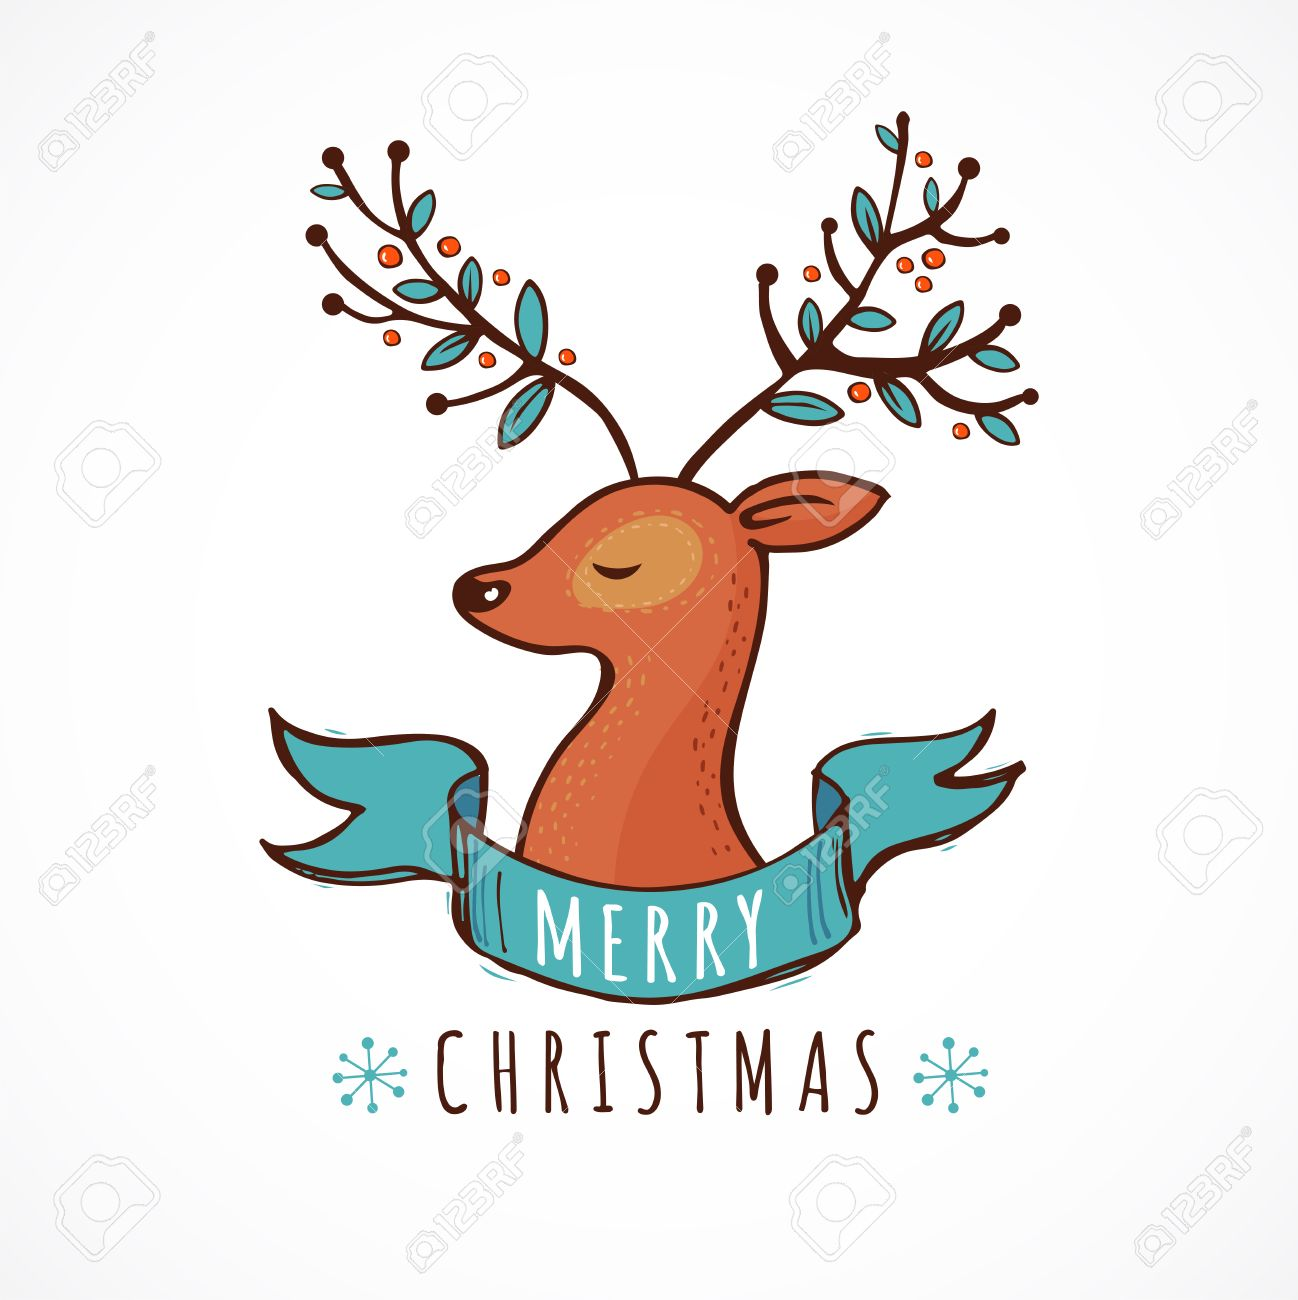 Christmas Backgrounds Cute.Christmas Background And Greeting Card With A Cute Deer Illustration